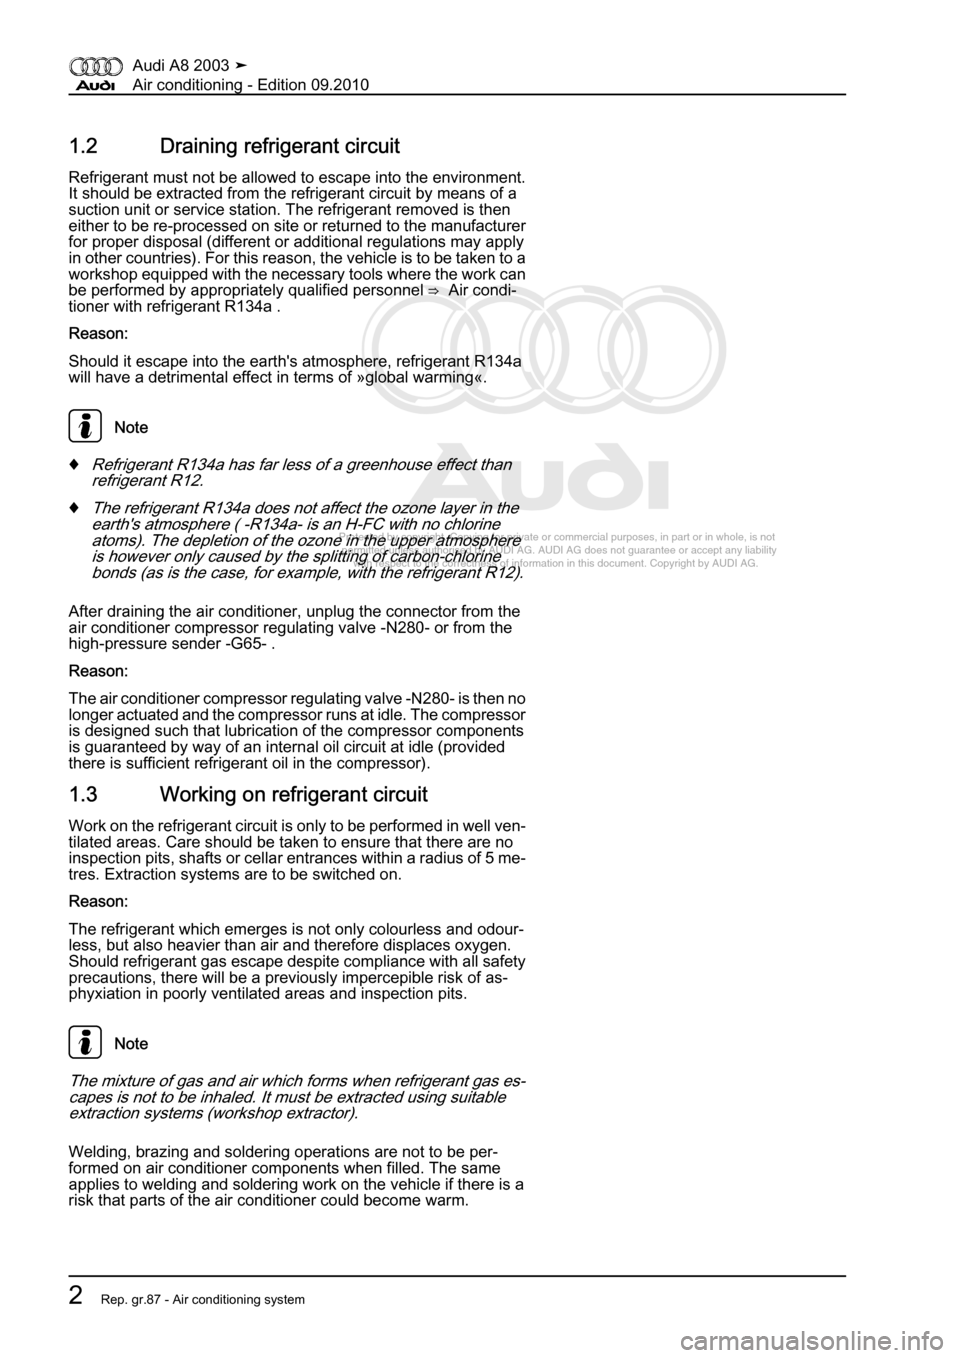 AUDI A8 2003 D3 / 2.G Air Condition Workshop Manual, Page 8